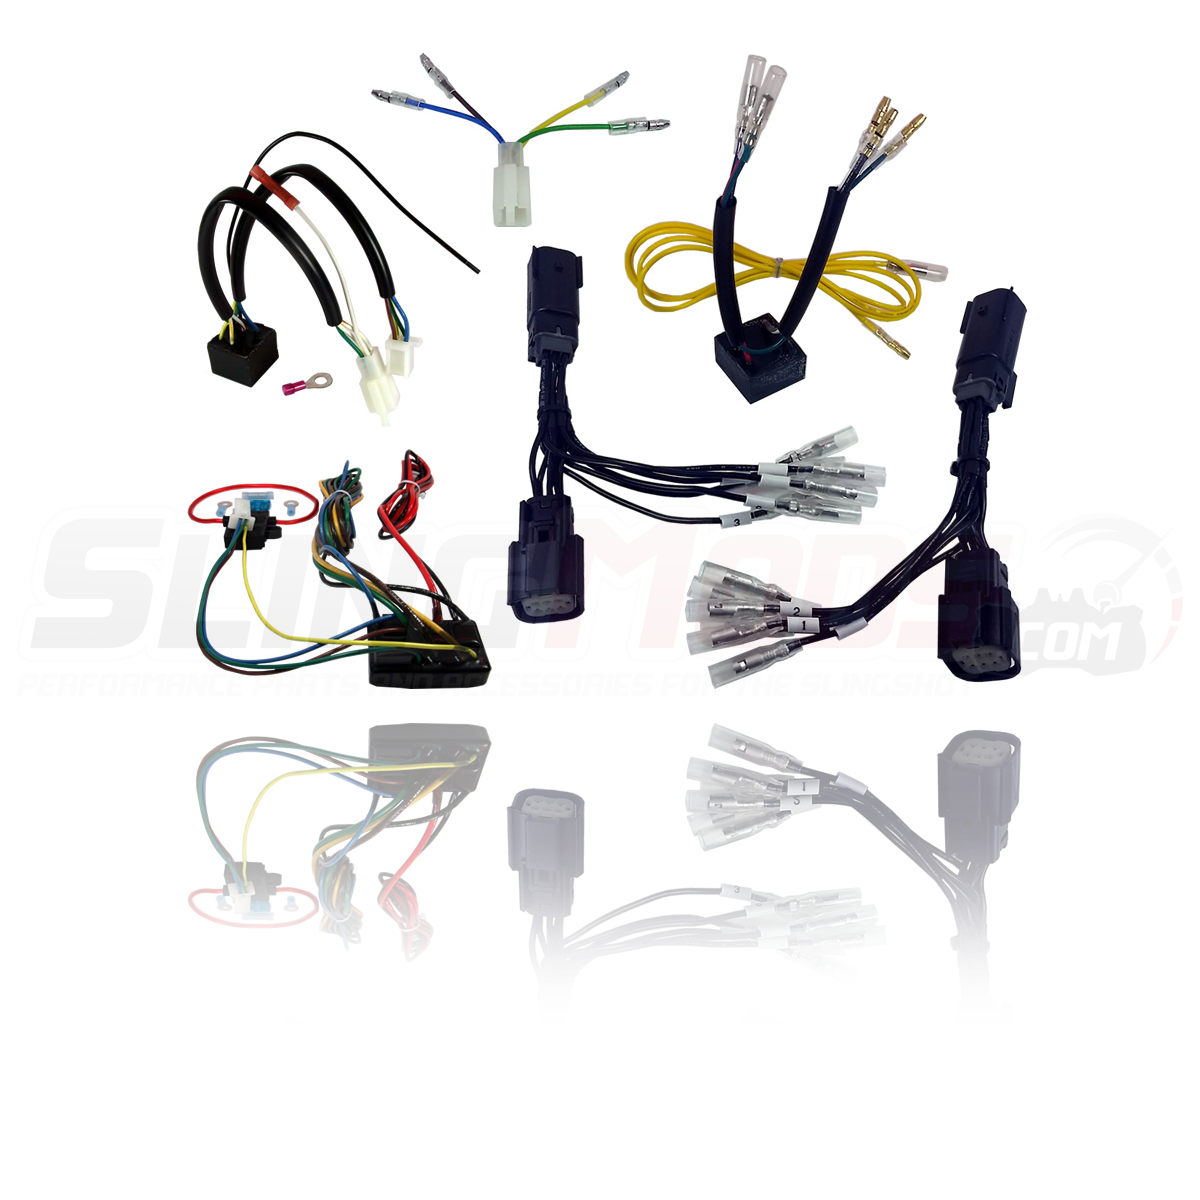 Bushtec Trailer Wiring Harness Library 2015 Gl1800 Diagram Electrical Connection Hitch For The Polaris Slingshot